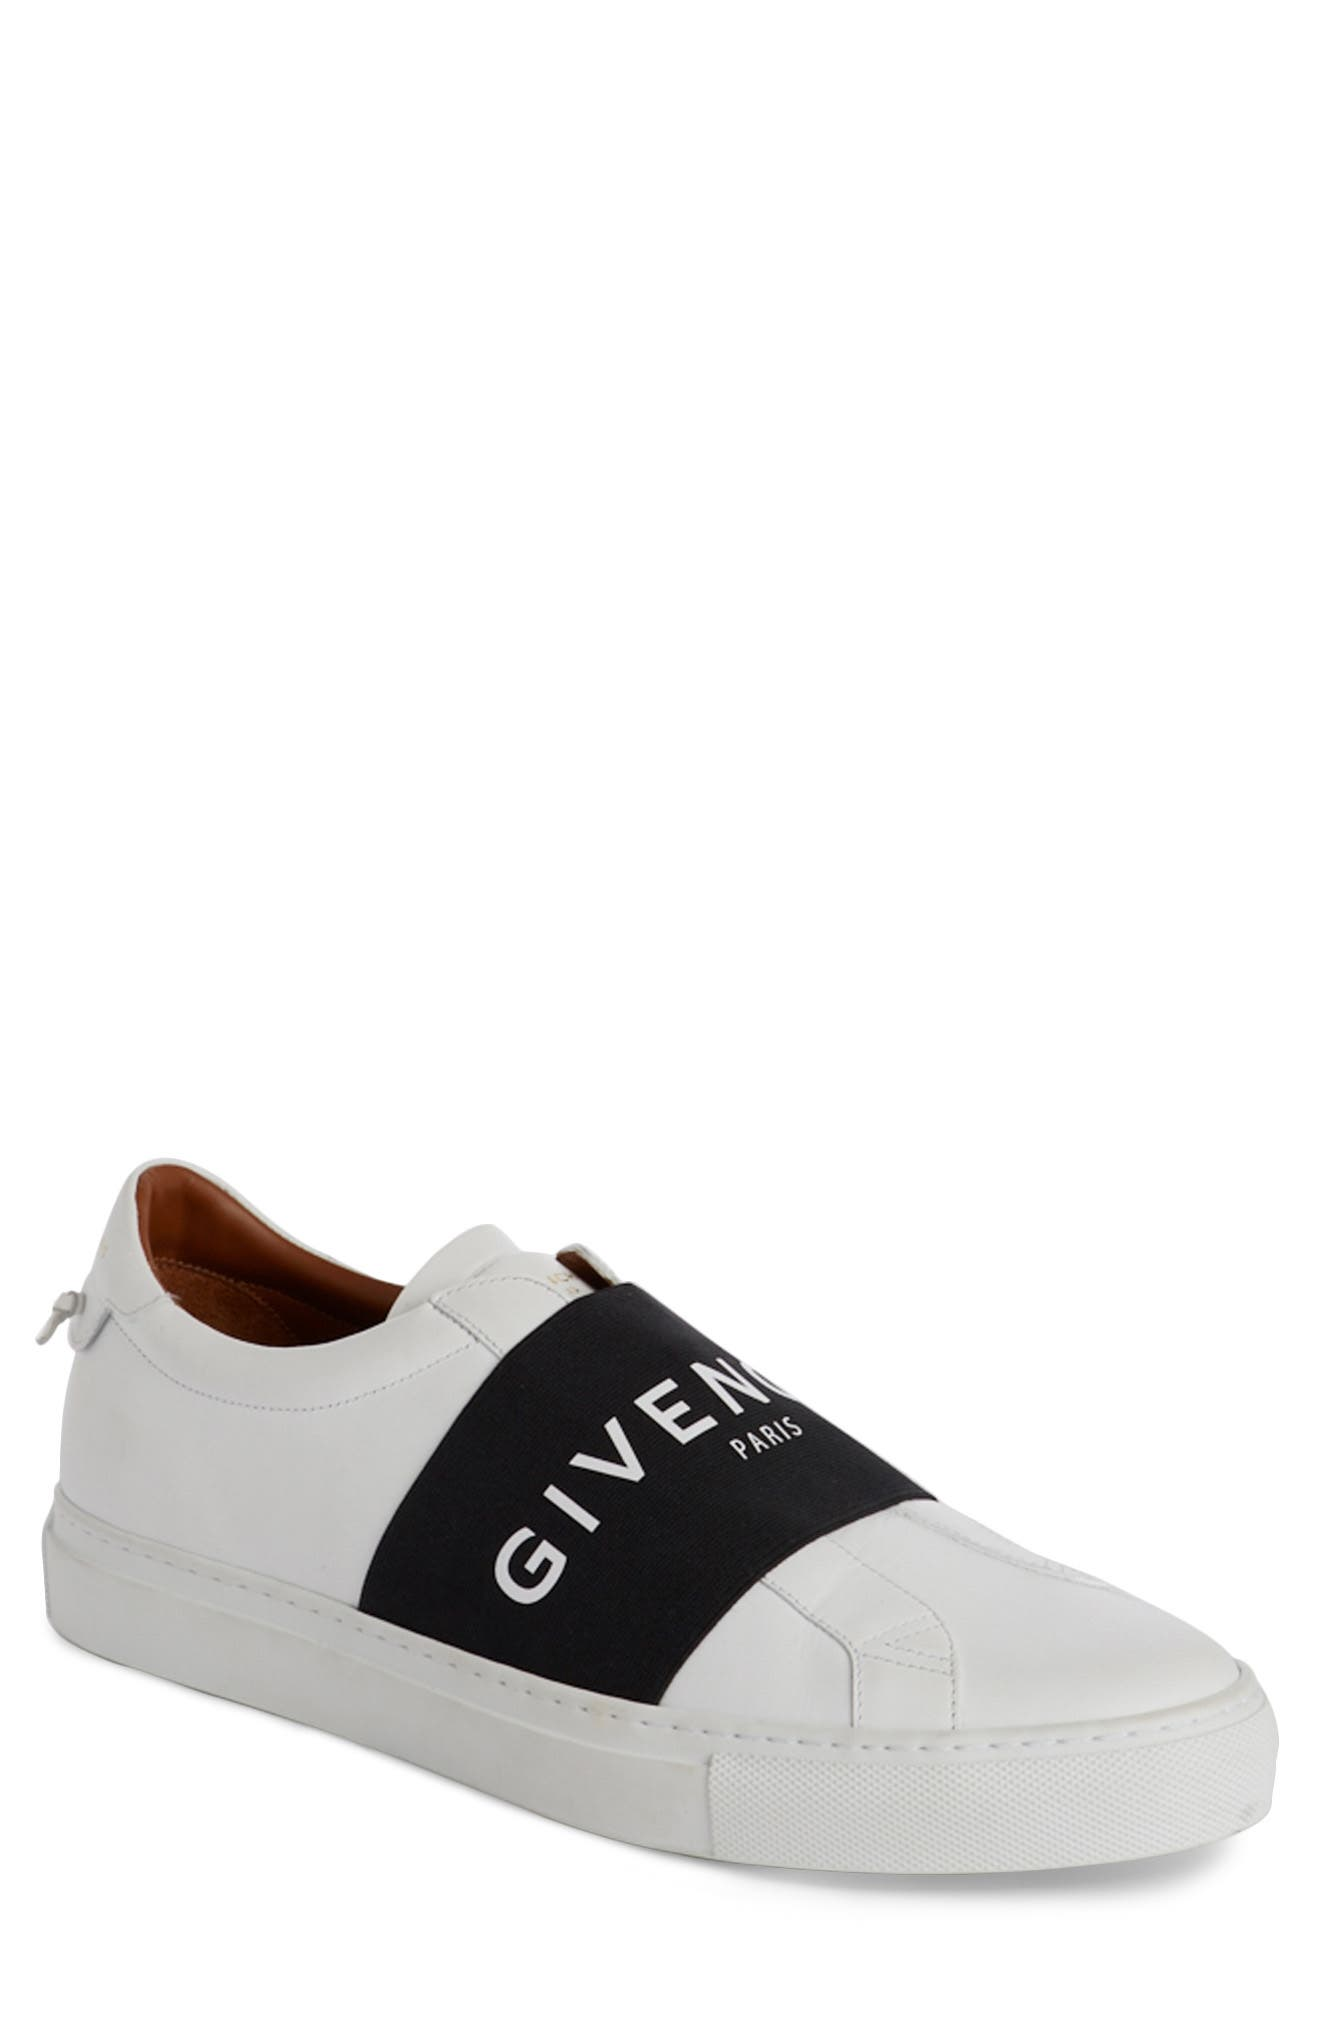 Main Image - Givenchy Logo Strap Slip-On Sneaker (Women)